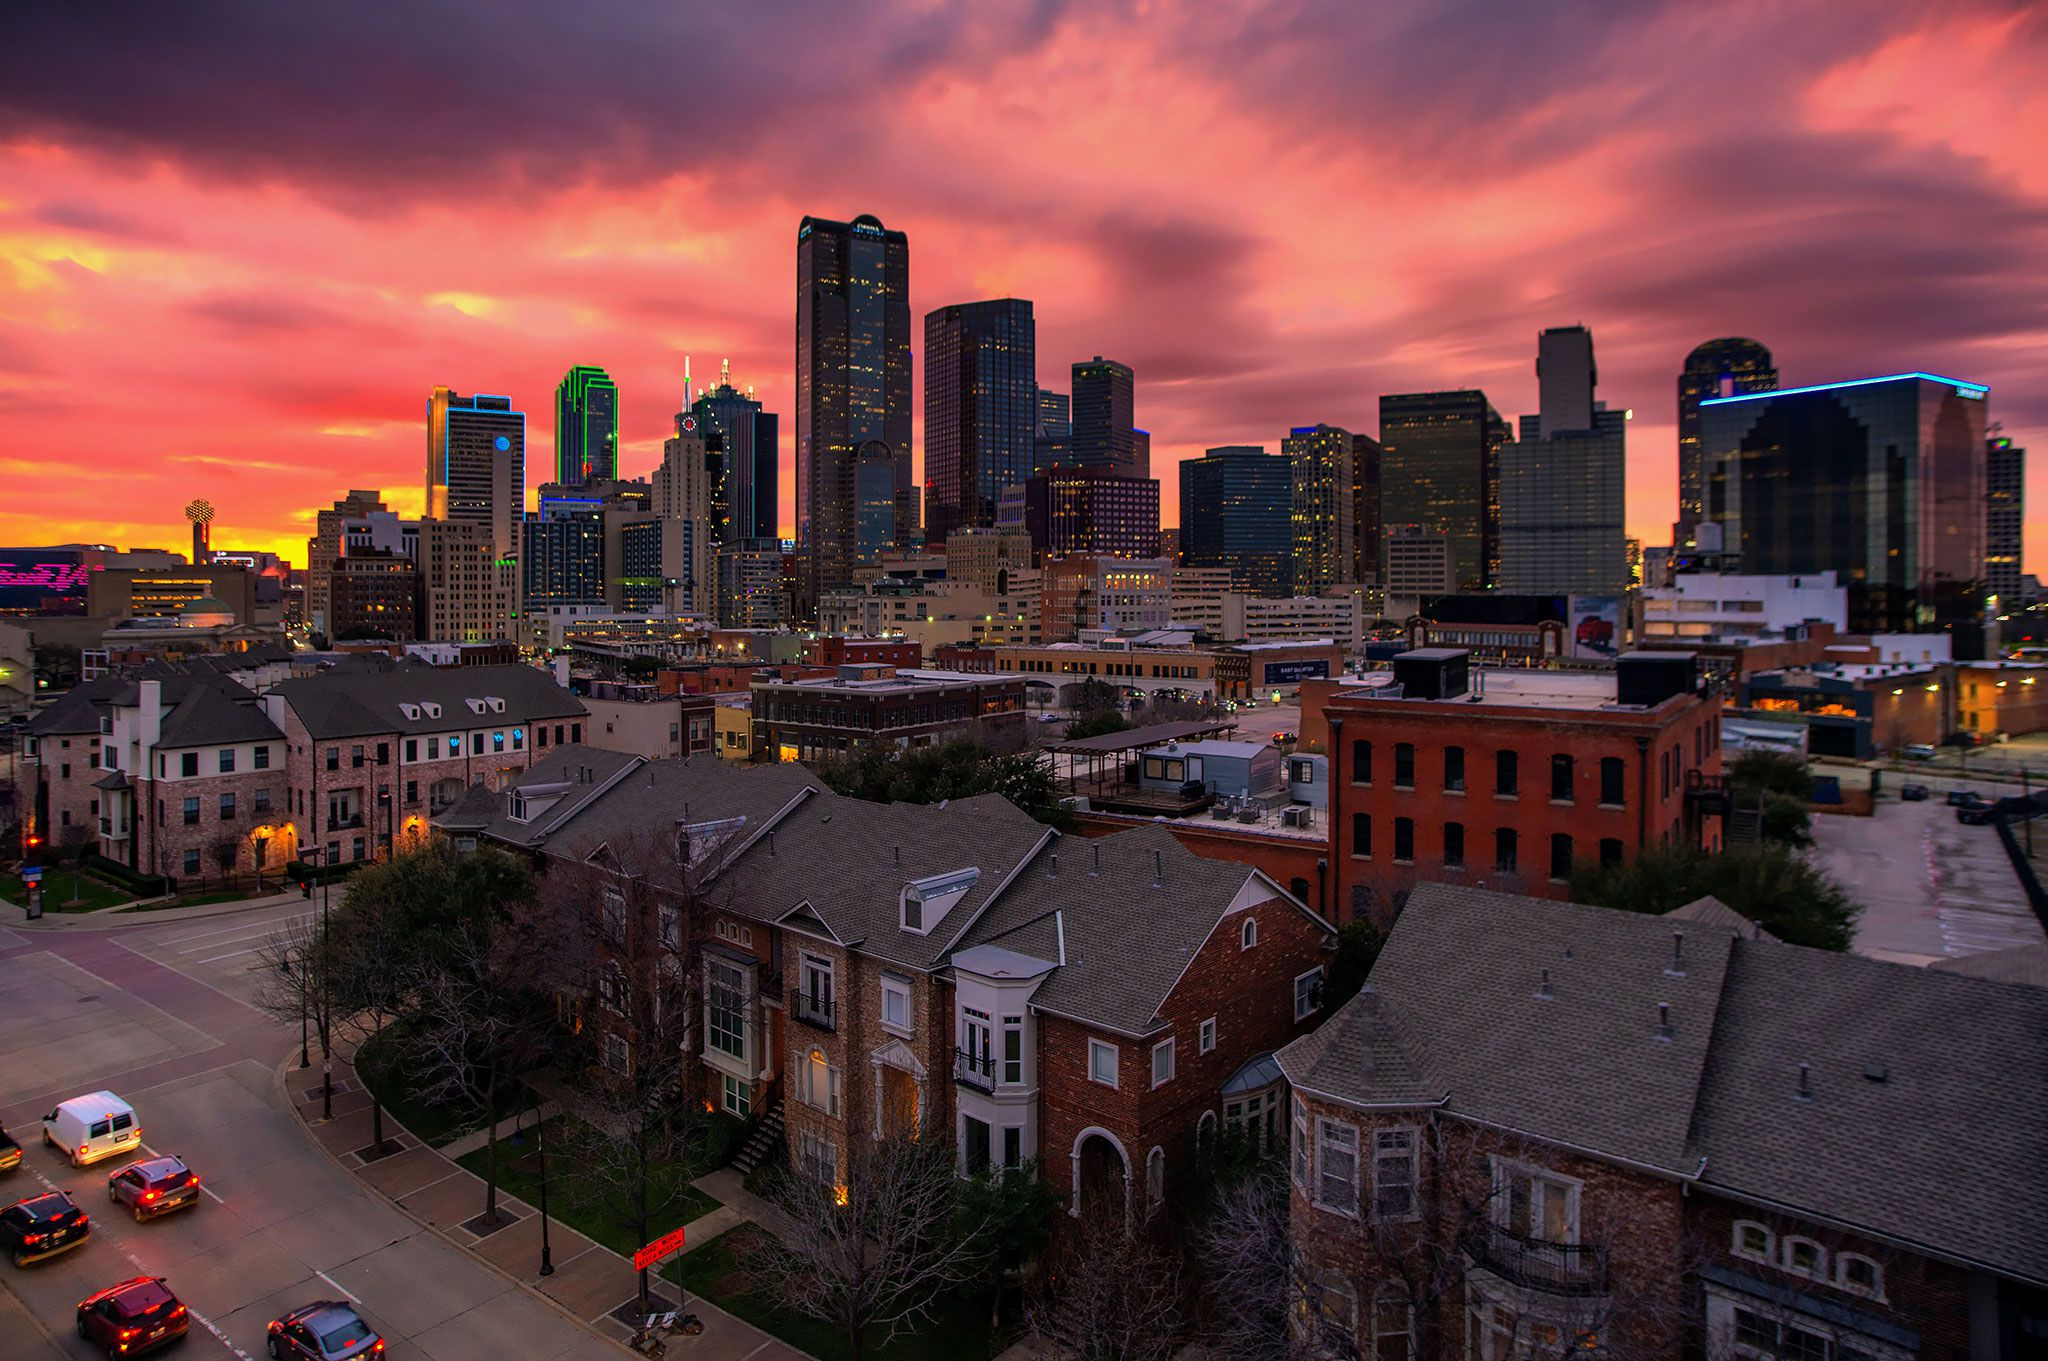 Pink sky over the Dallas